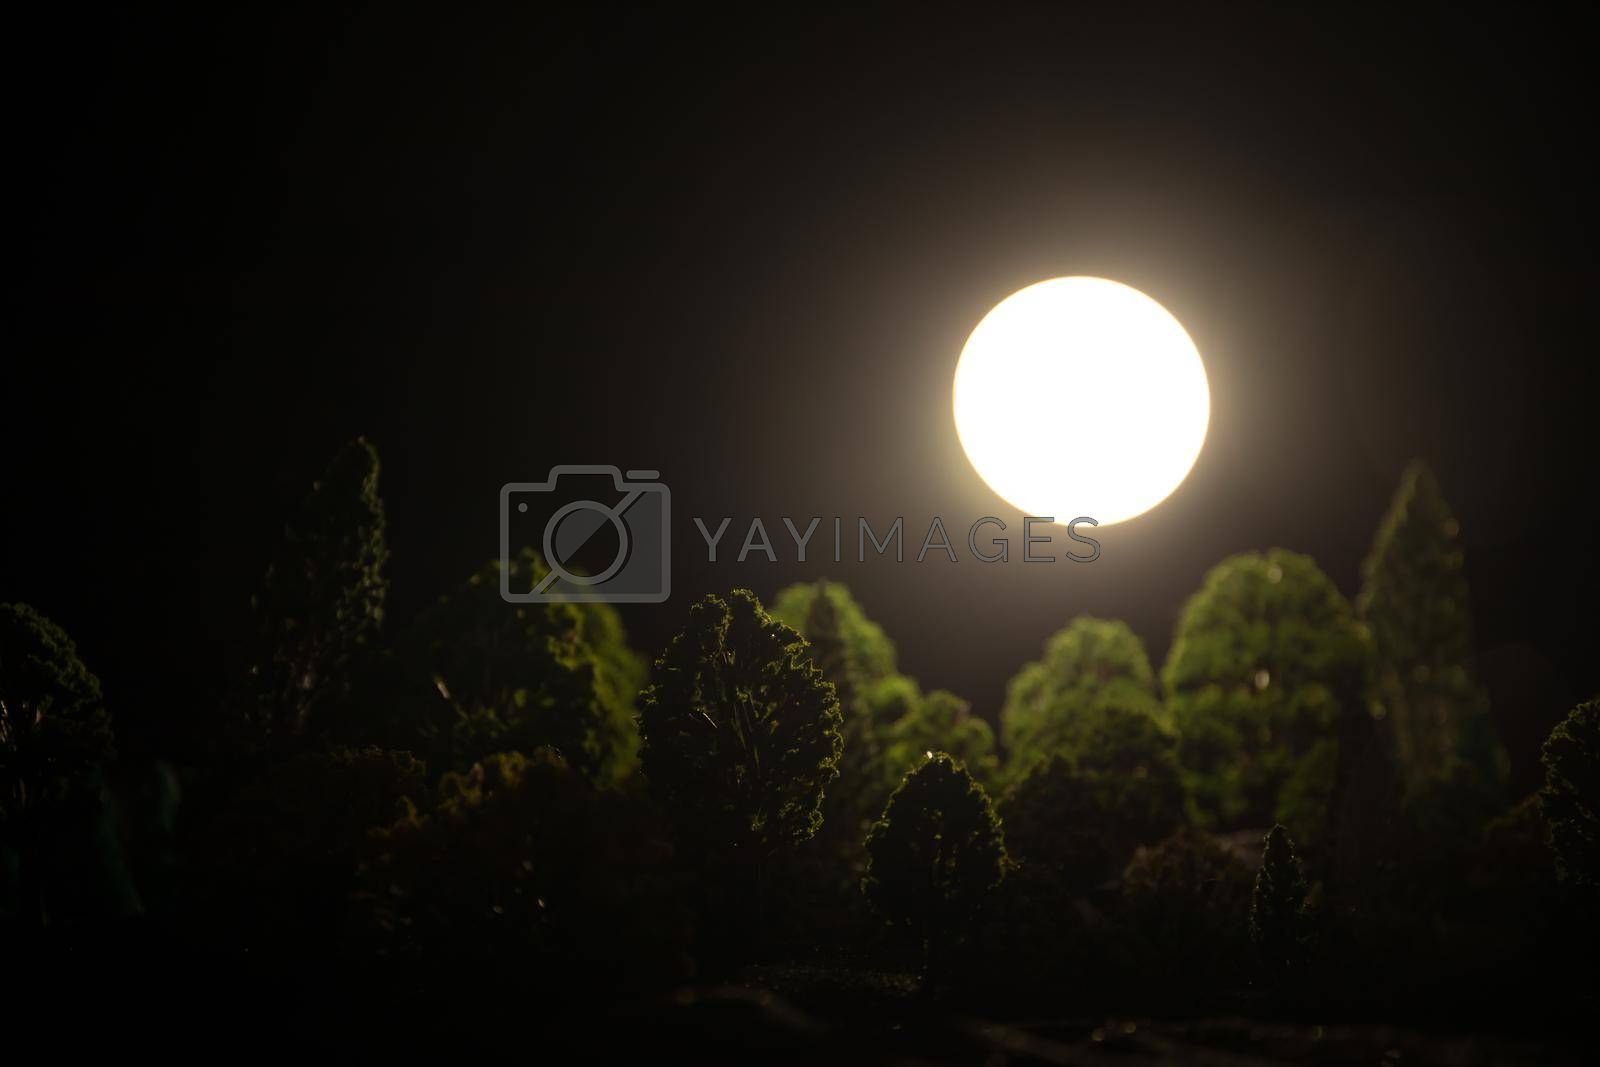 Full moon over the forest at night. Scenic night landscape of country road at night with large moon. Miniature decoration. Selective focus